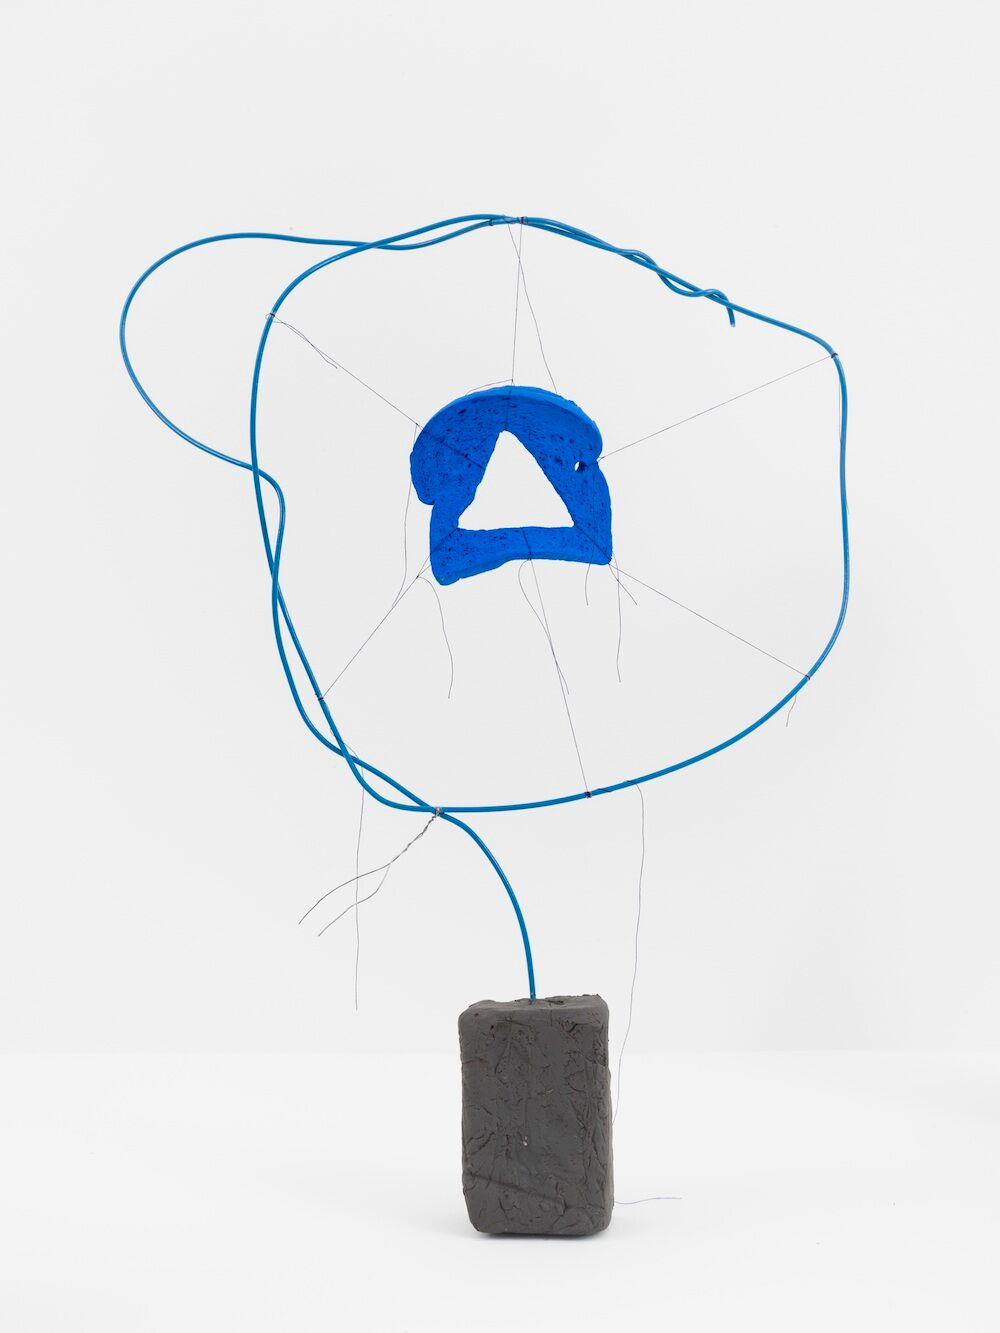 Michelle Segre,  Driftloaf (Blue Triangle) , 2015